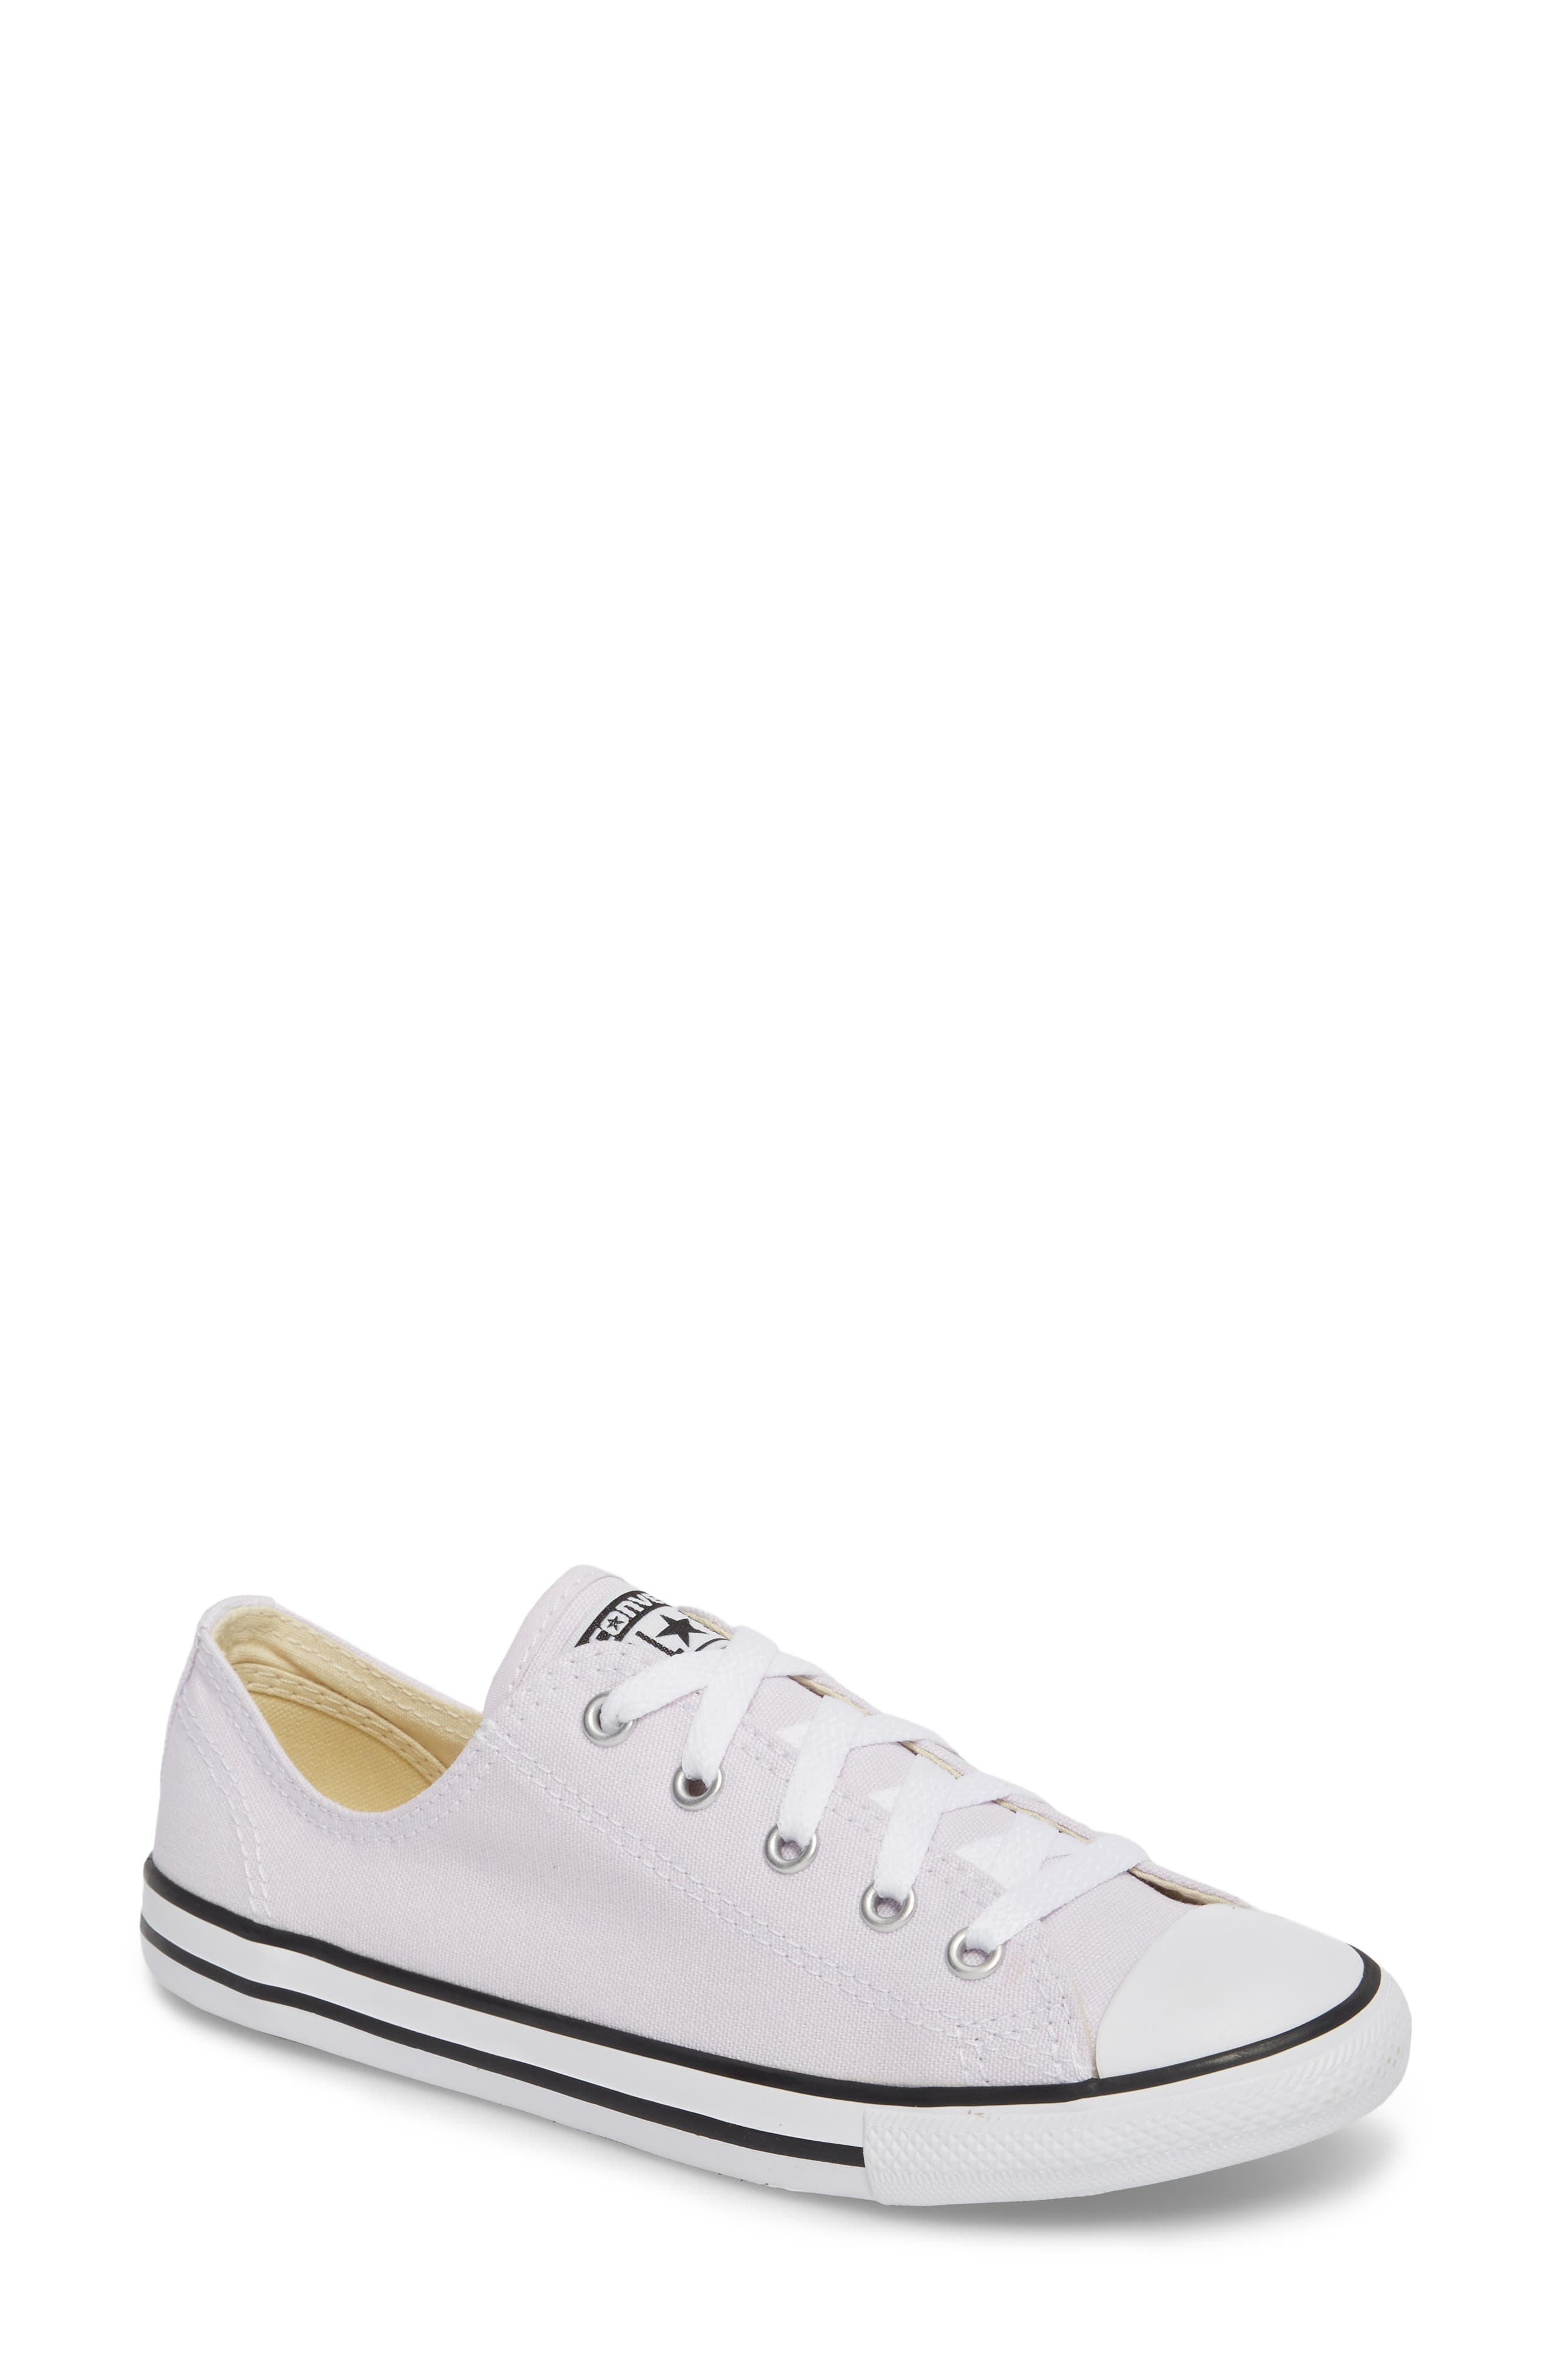 Main Image - Converse Chuck Taylor® All Star® Dainty Ox Low Top Sneaker (Women)